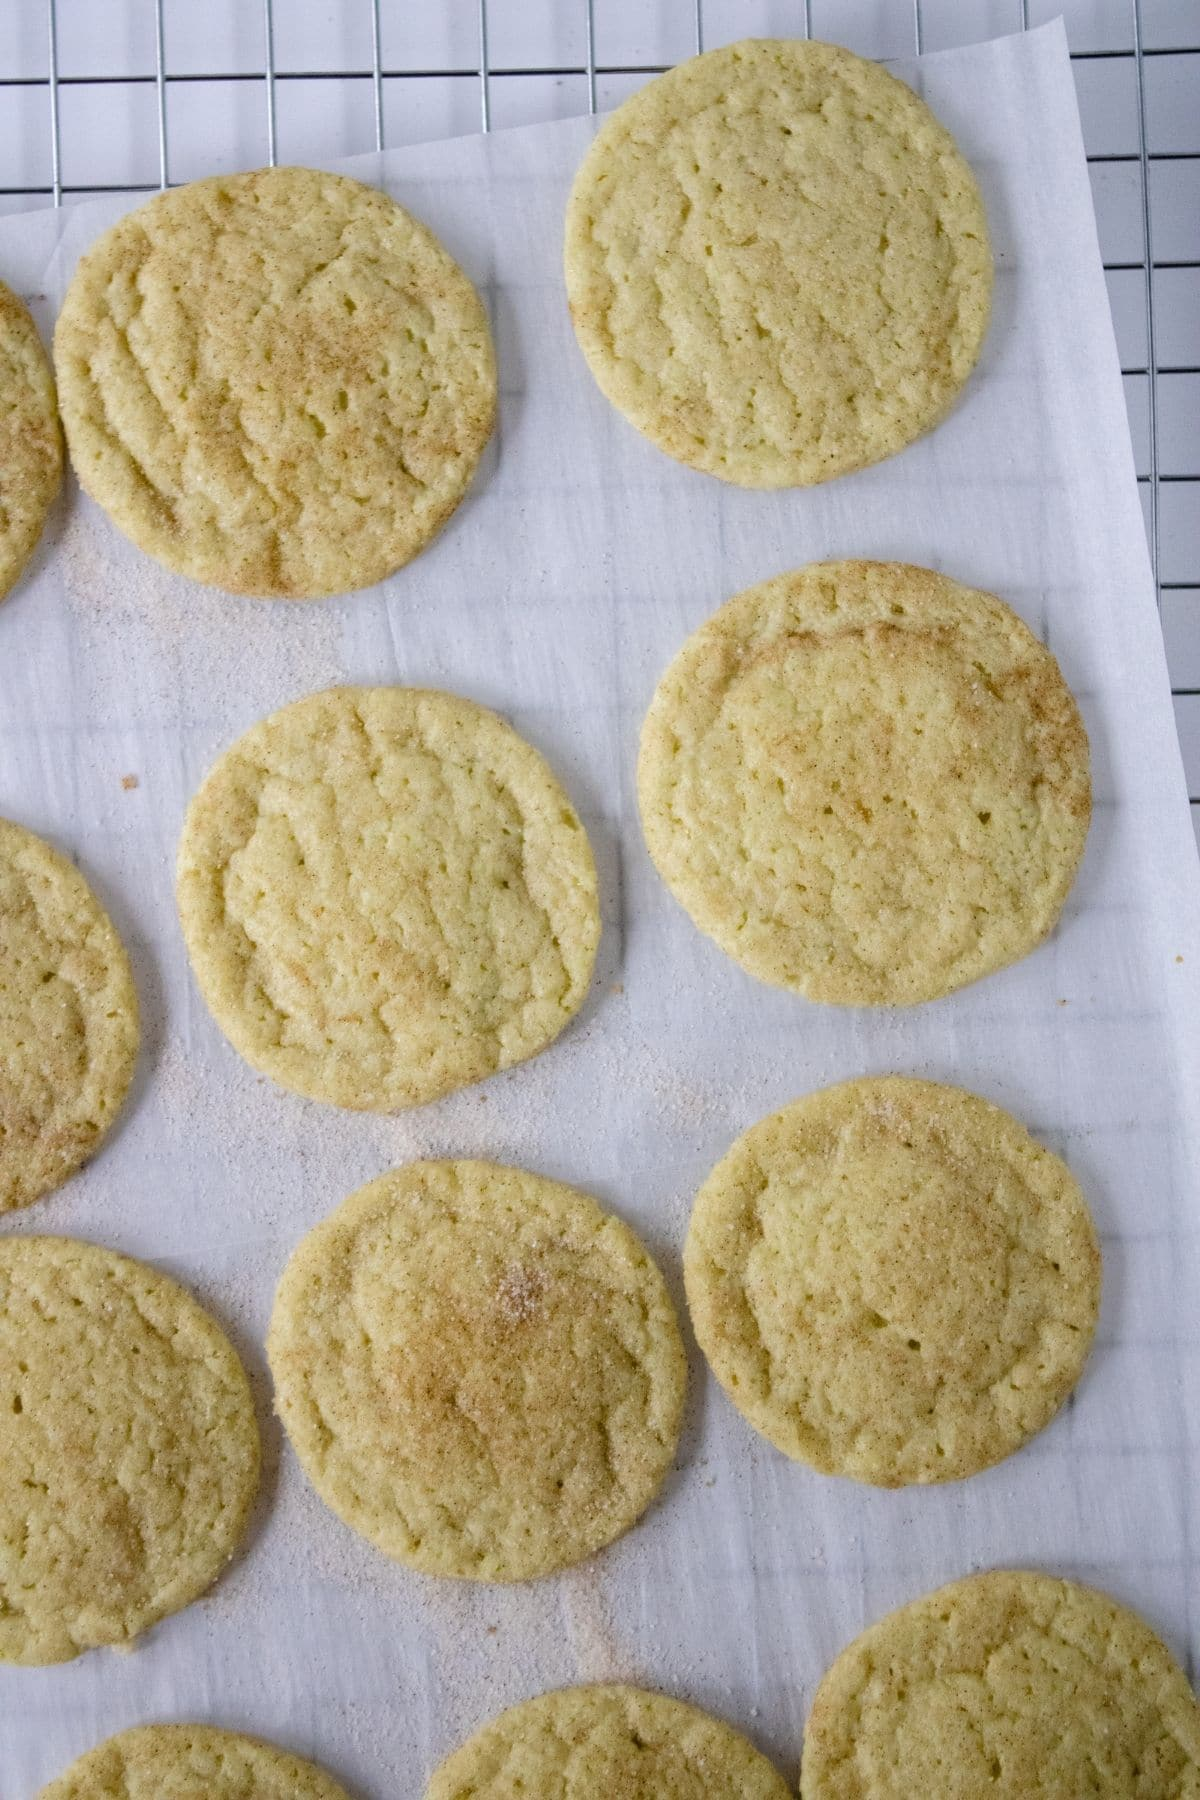 baked cookies on parchment paper on wire rack